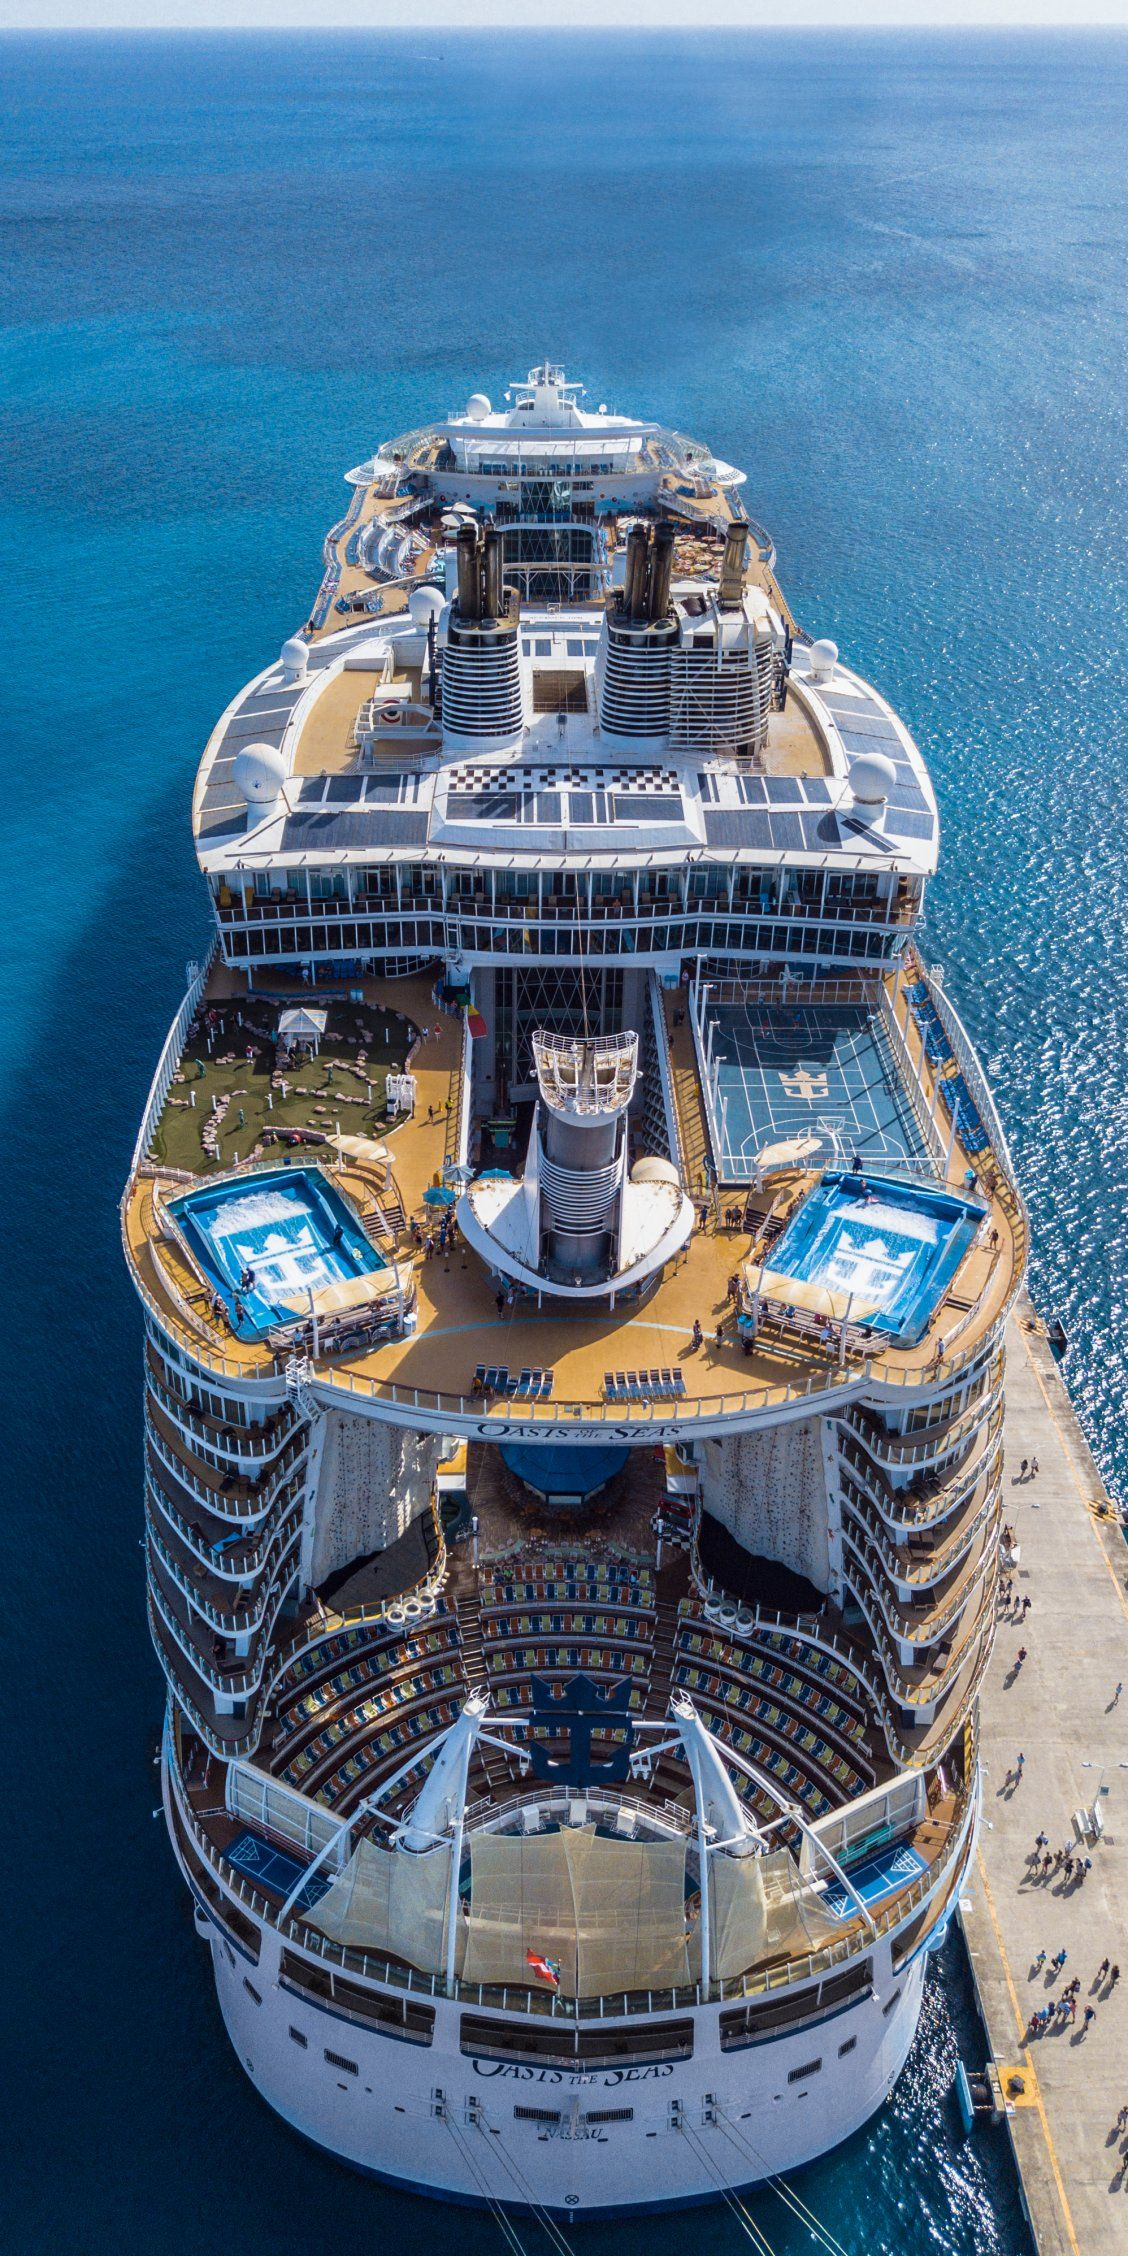 Oasis Of The Seas Extraordinary At First Sight With A Design That Blends The Beauty Of The Open Ocean With S Royal Caribbean Cruise Oasis Cruise Cruise Ship